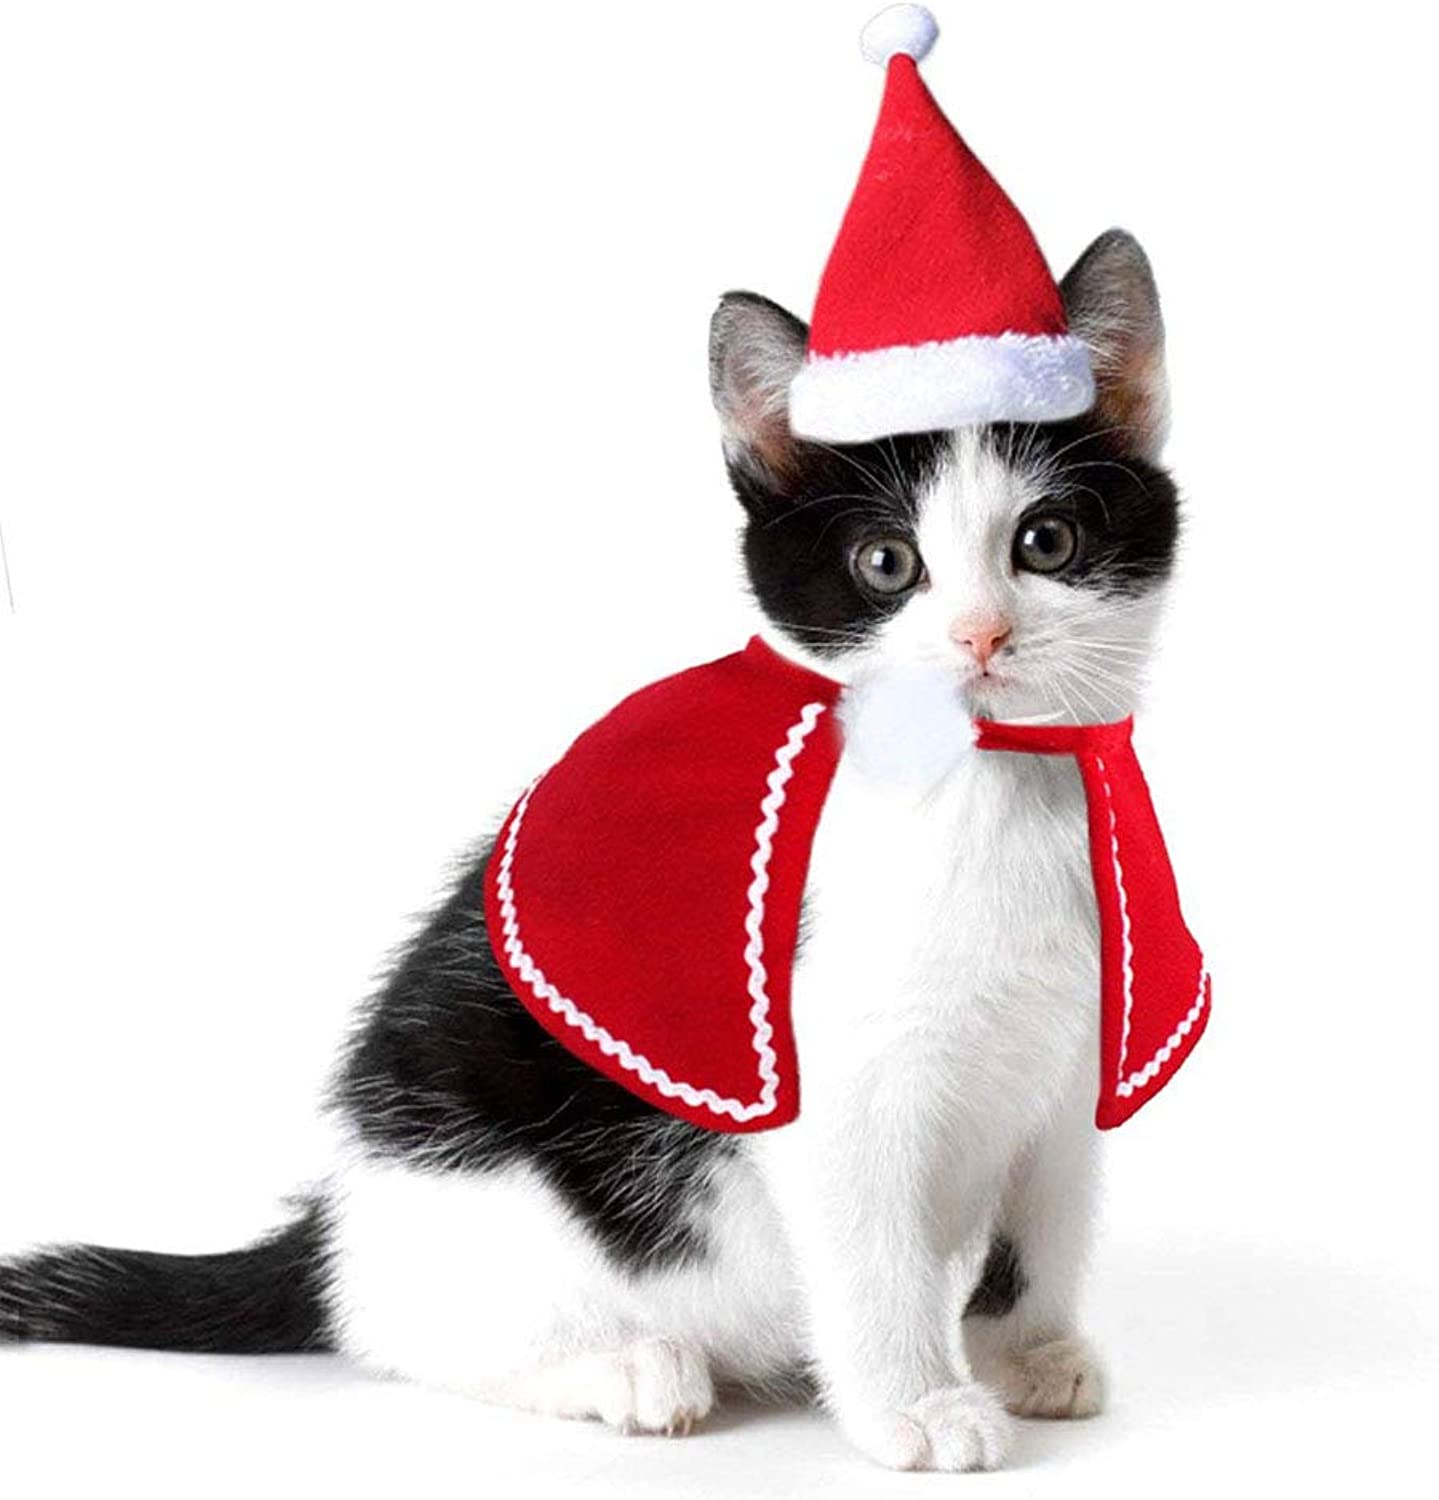 Adorable Cat Dog Costumes Cloak Cape Pet Clothes Shawl Scarf Outfit with Santa Hat Cute Cat Coat New Year Christmas Costumes for Puppy Kitten Small Dogs and Cats Holiday Accessory